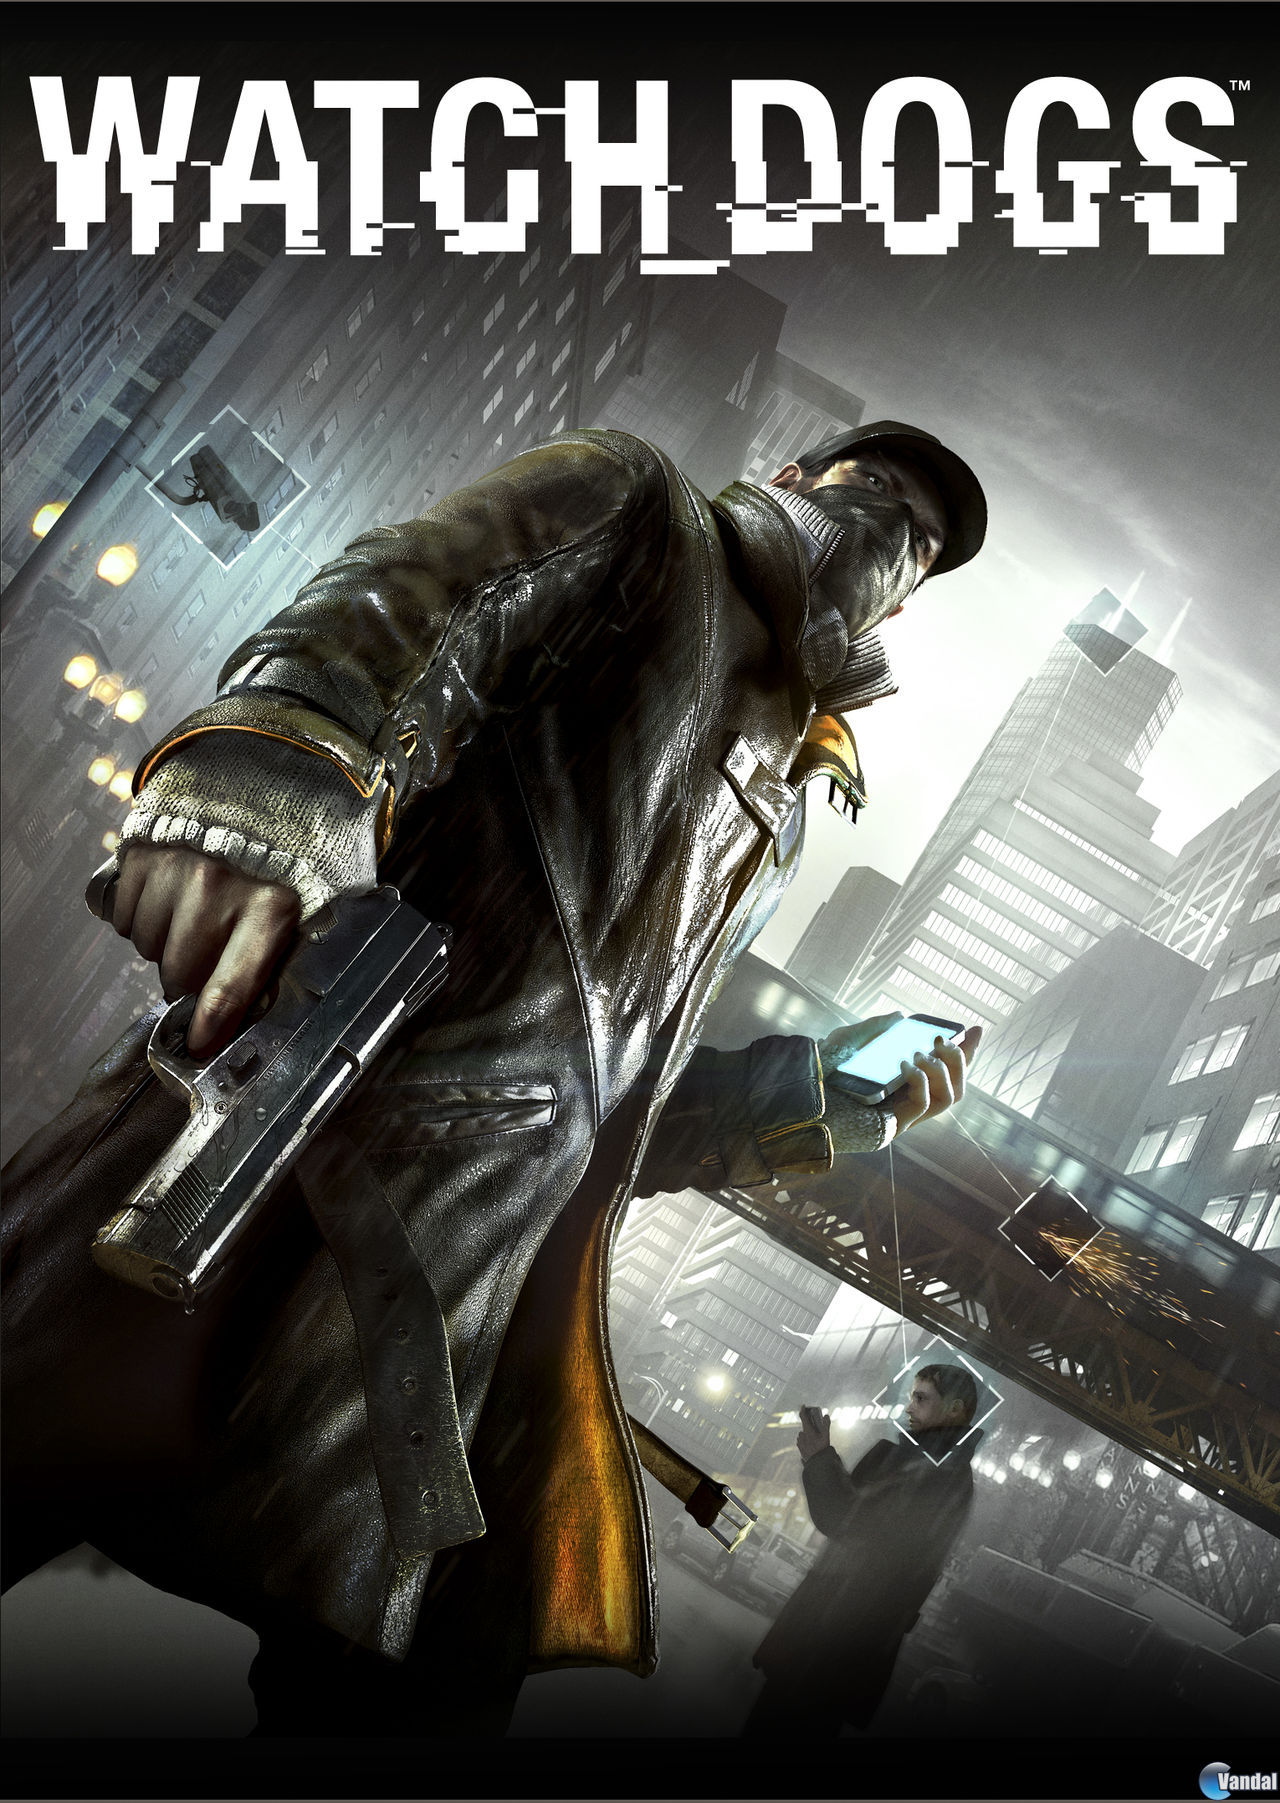 Watch Dogs (Ubisoft) cover art for PS3, PS4 Xbox-720, Nintendo Wii U and Windows PC